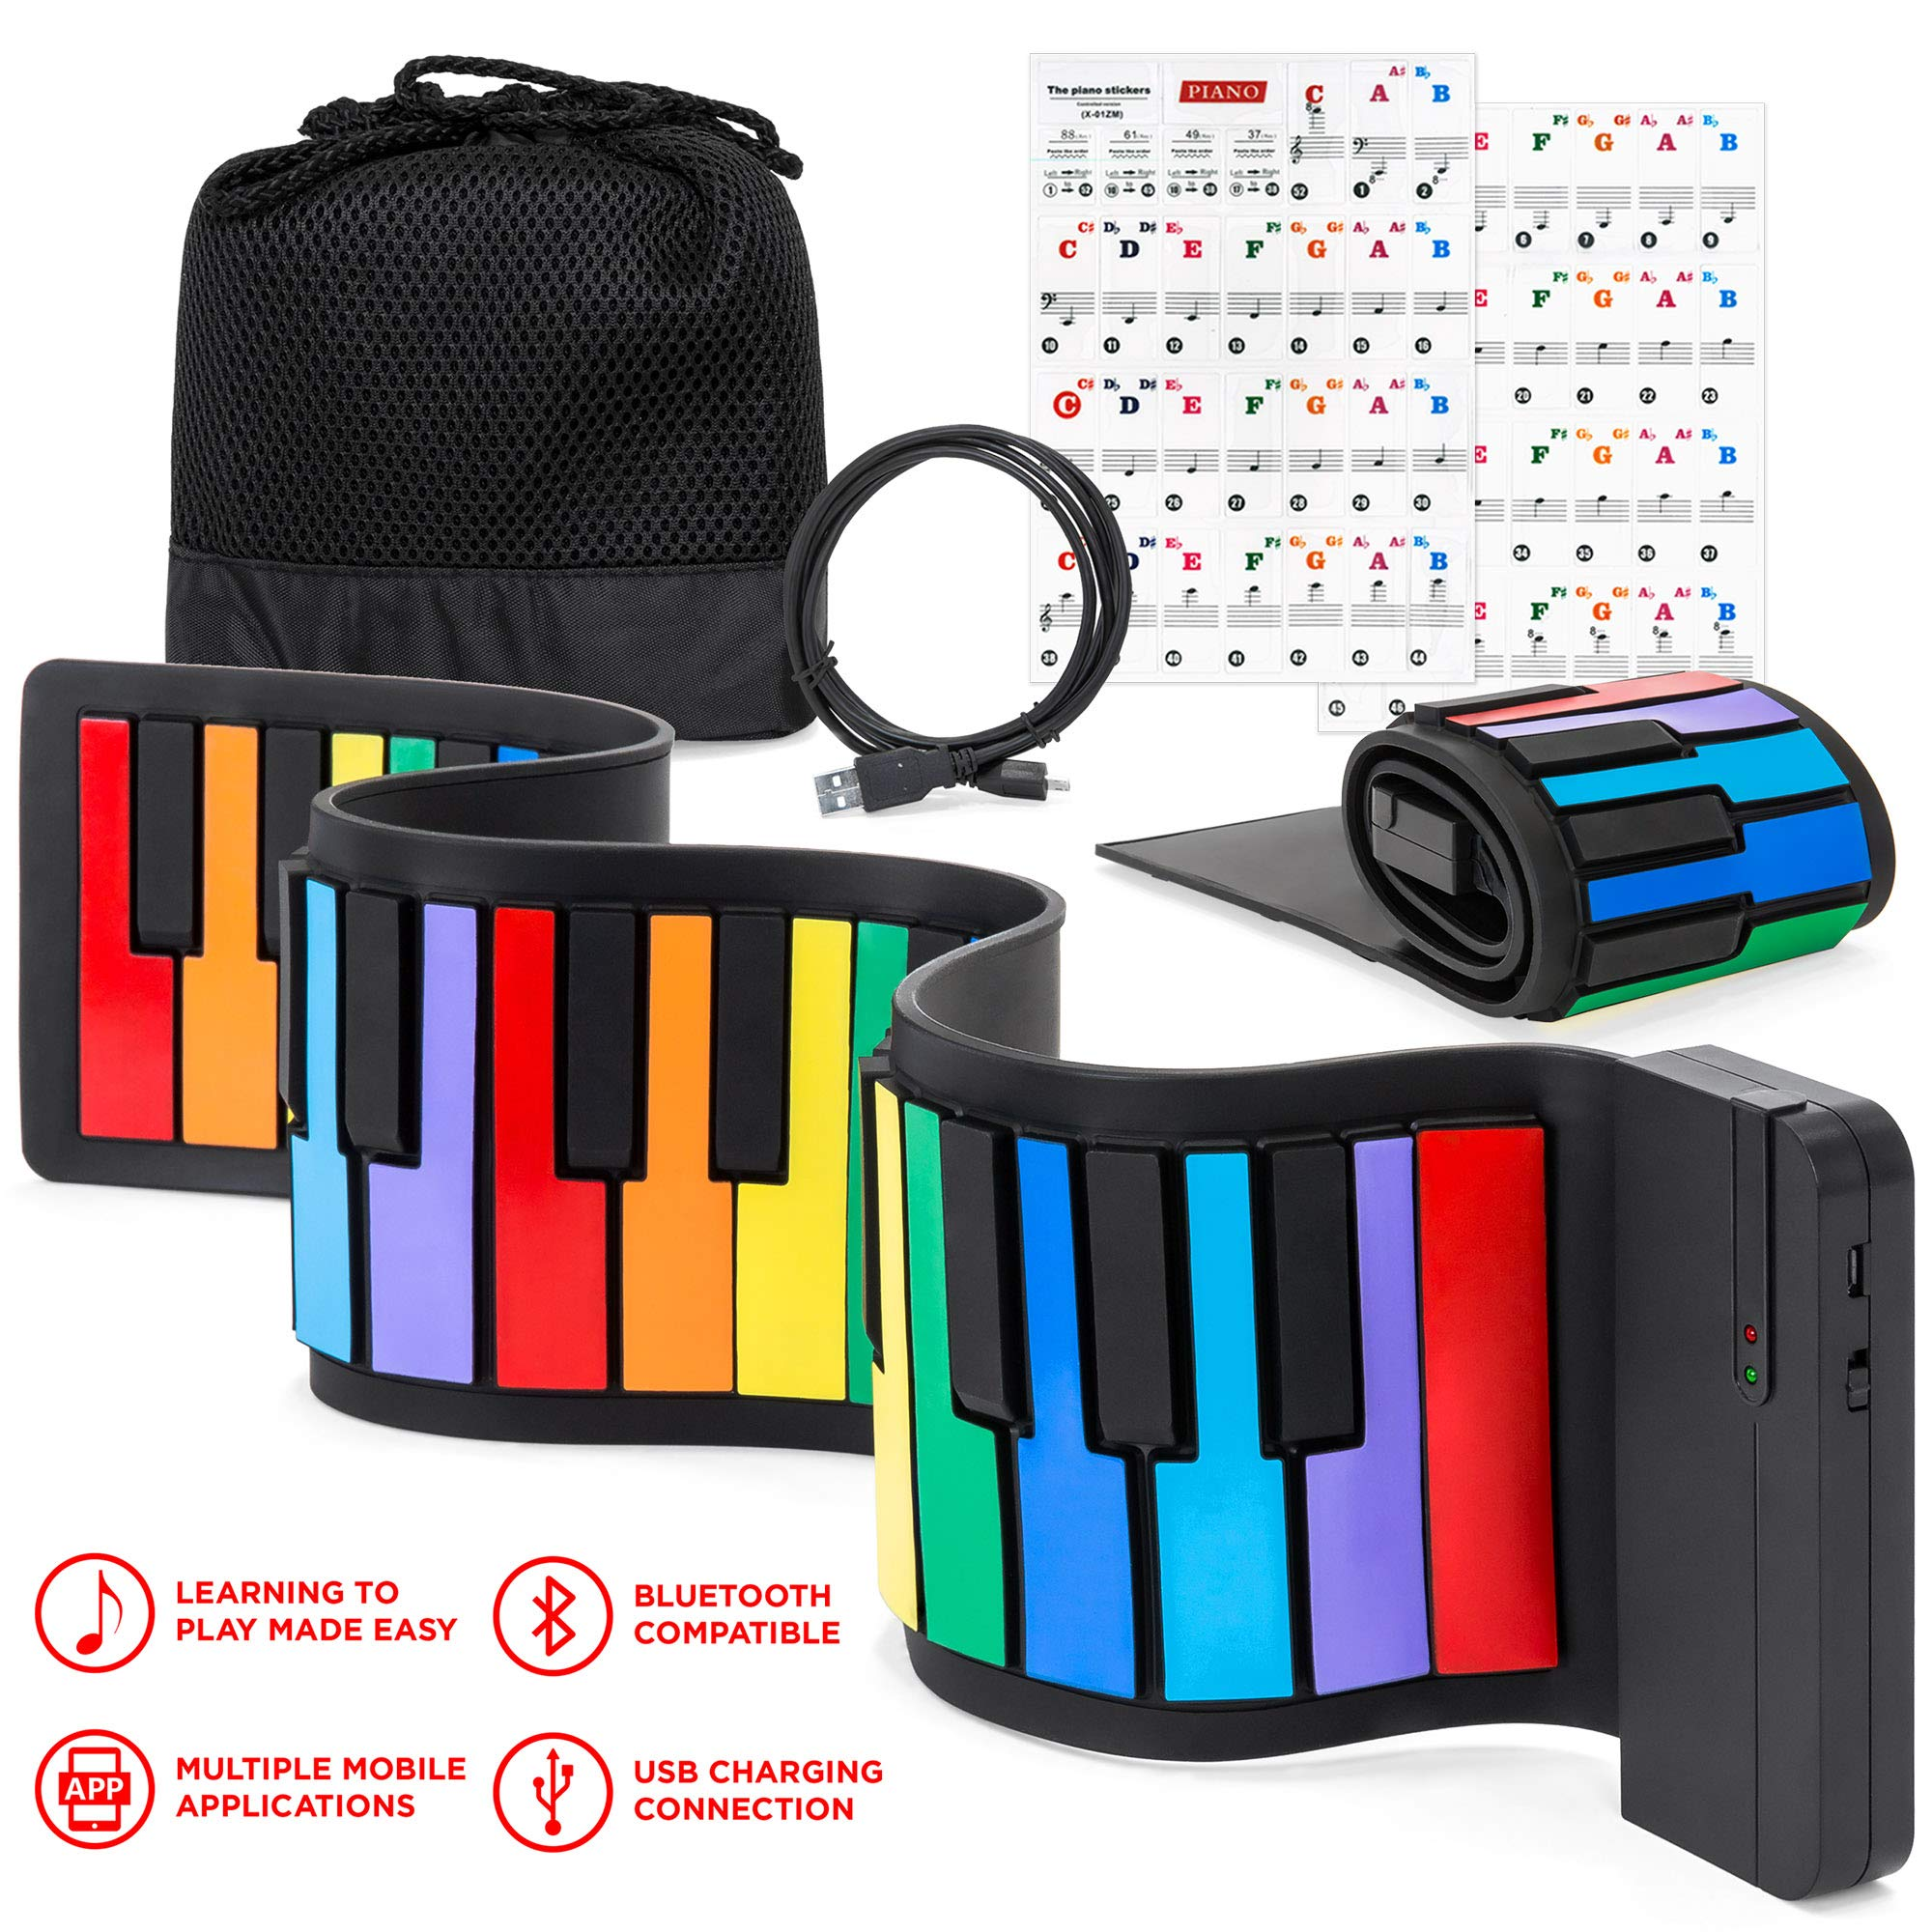 Best Choice Products Kids 49-Key Portable Flexible Roll-Up Piano Keyboard Toy w/Learn-To-Play App Game, Bluetooth Pairing, Note Labels (Rainbow) by Best Choice Products